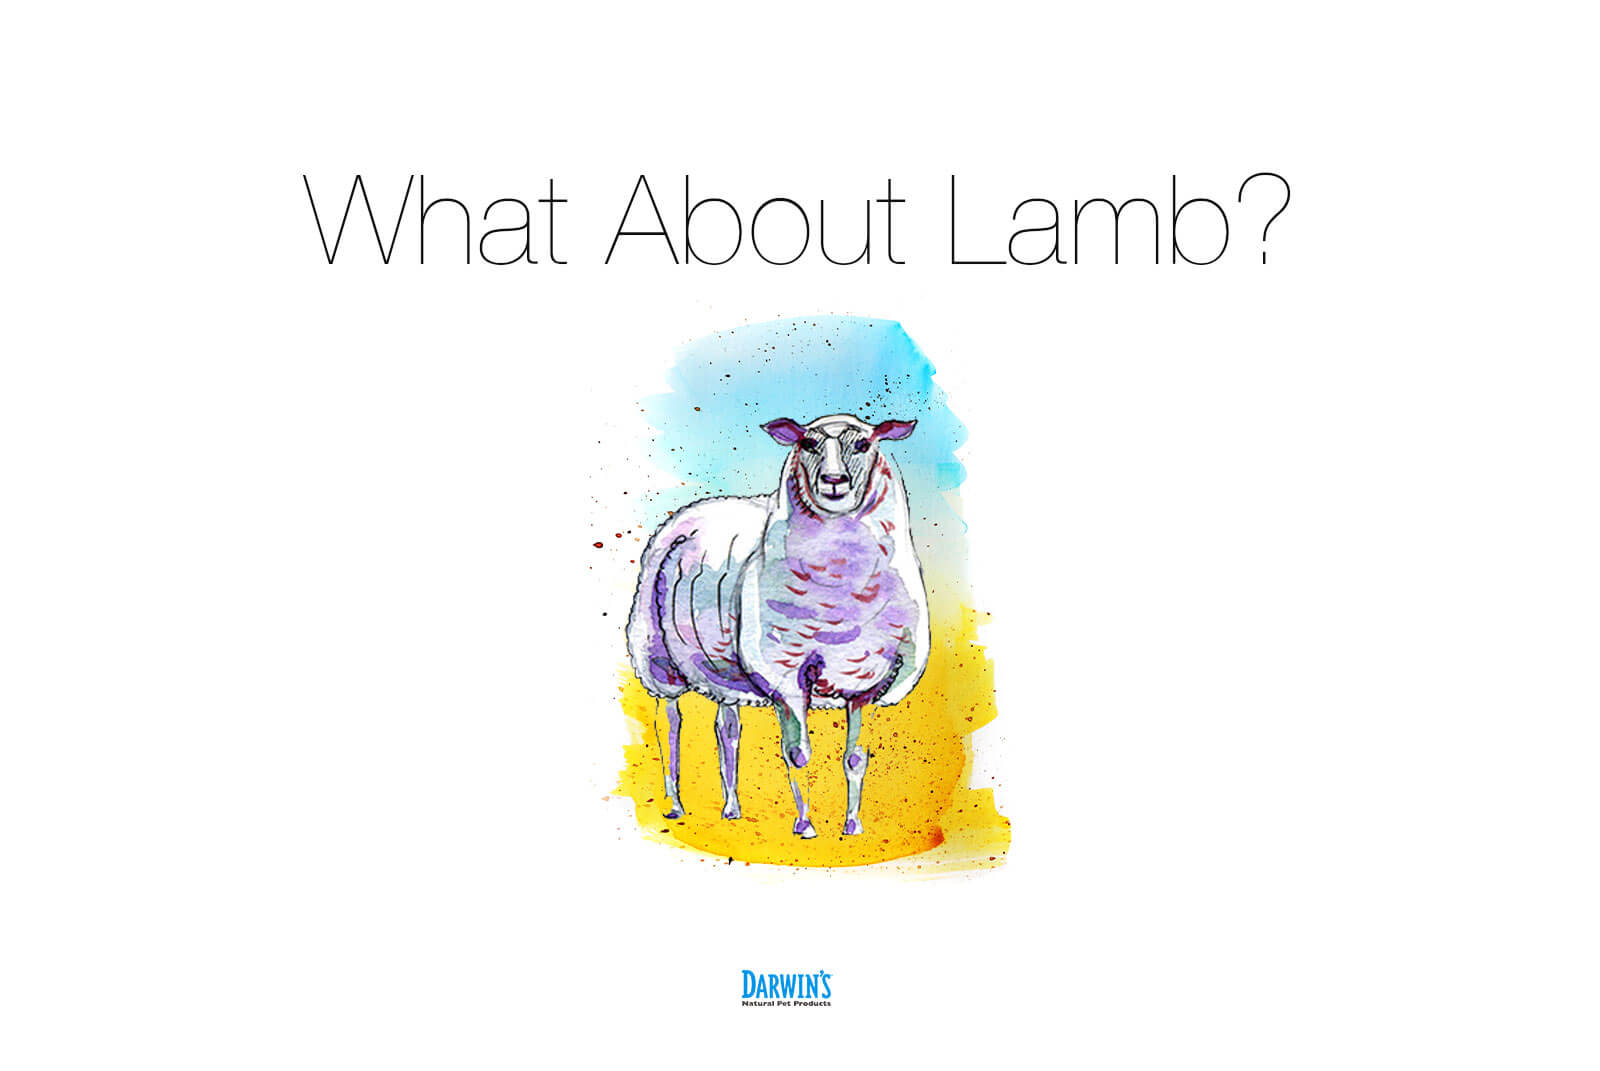 What About Lamb? – Ask Darwin's